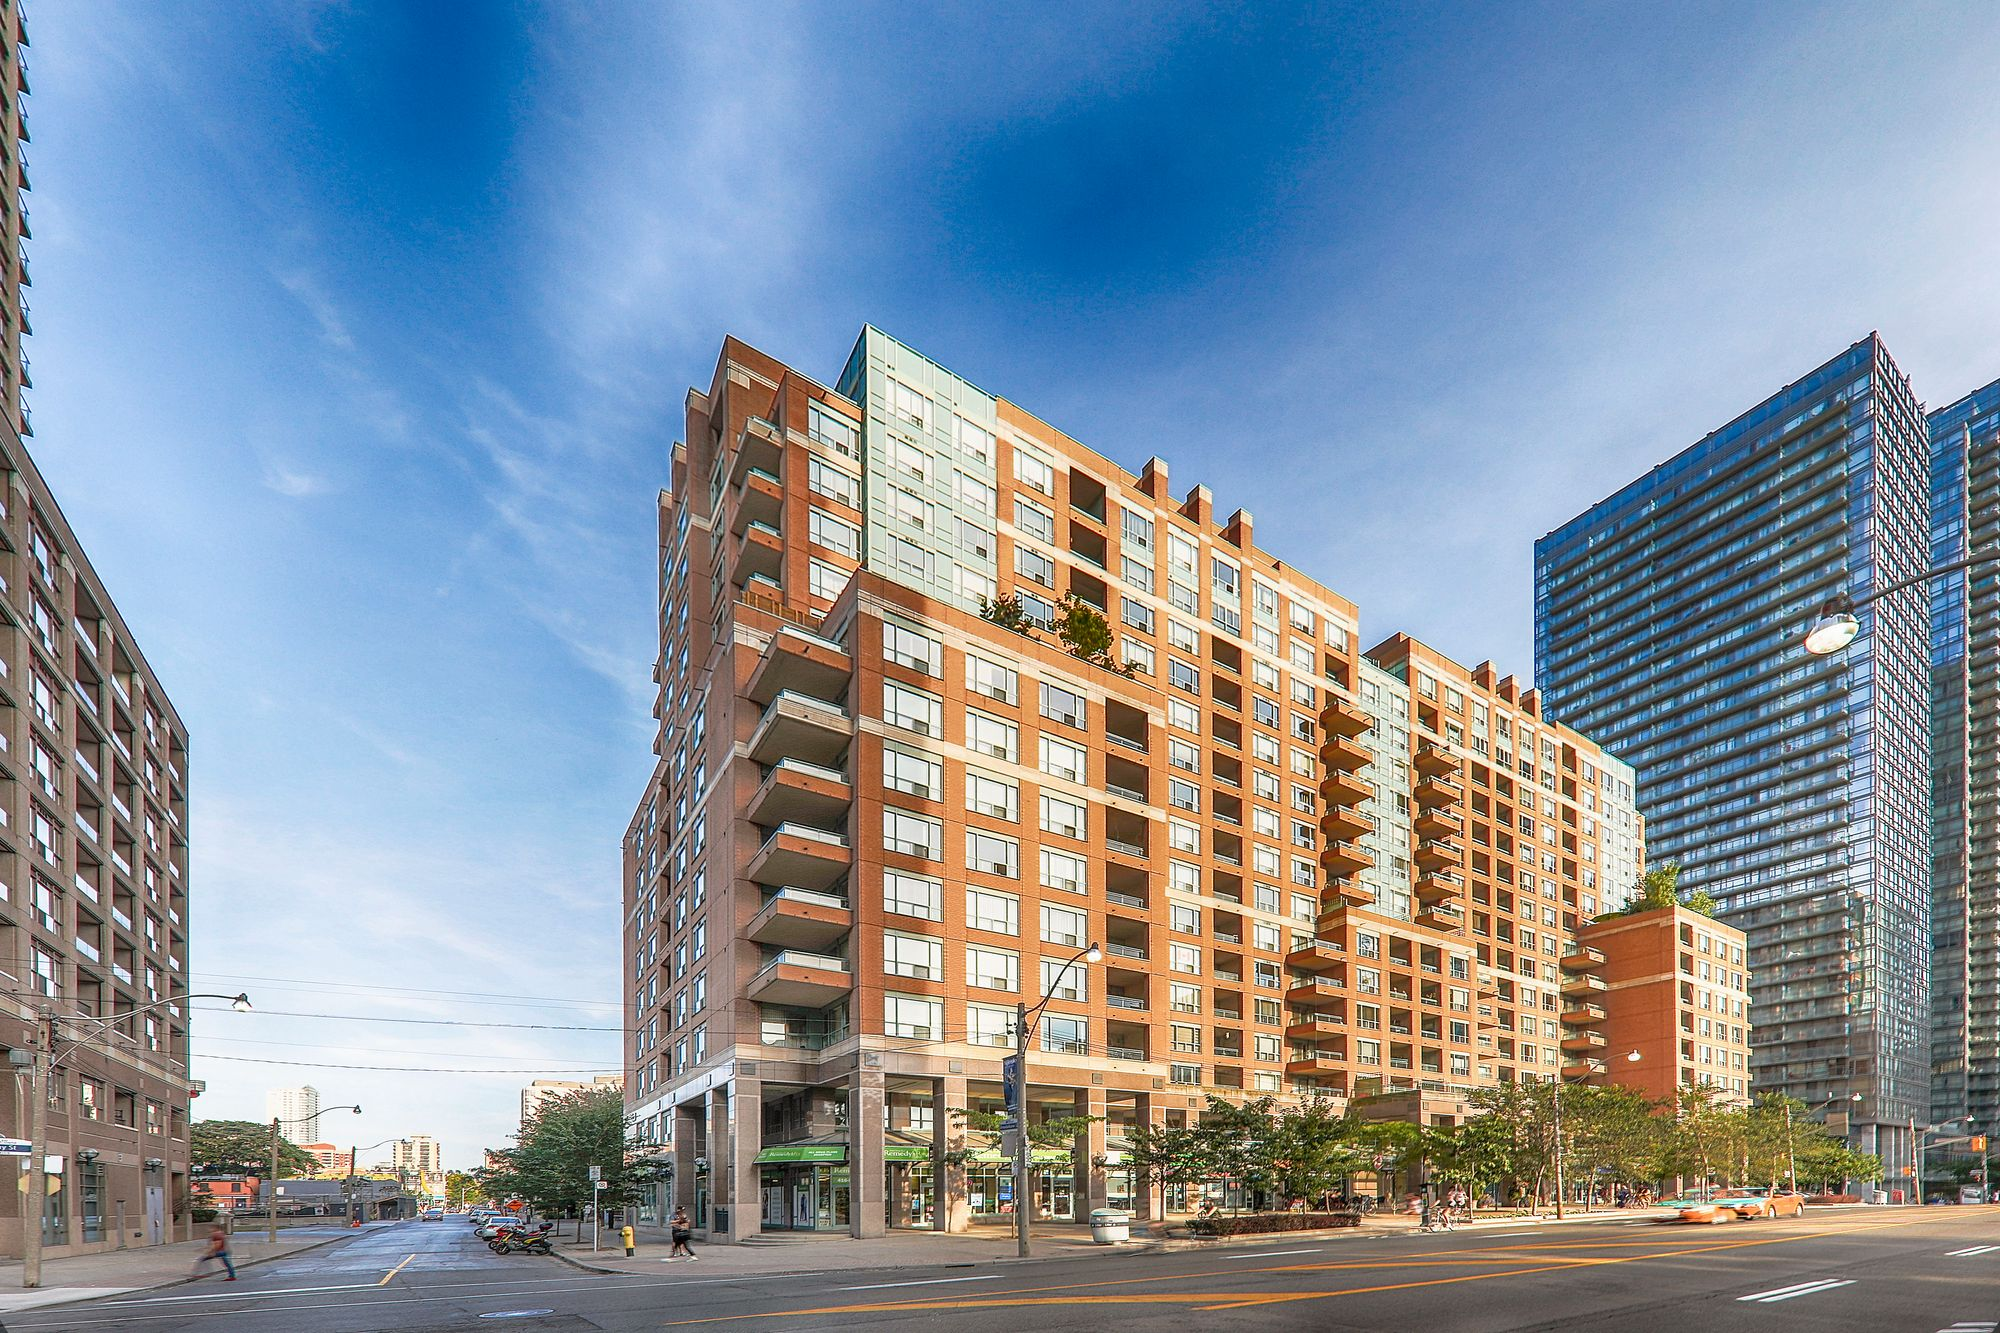 Opera Place II at 889 Bay St. This condo is located in  Downtown, Toronto - image #1 of 5 by Strata.ca